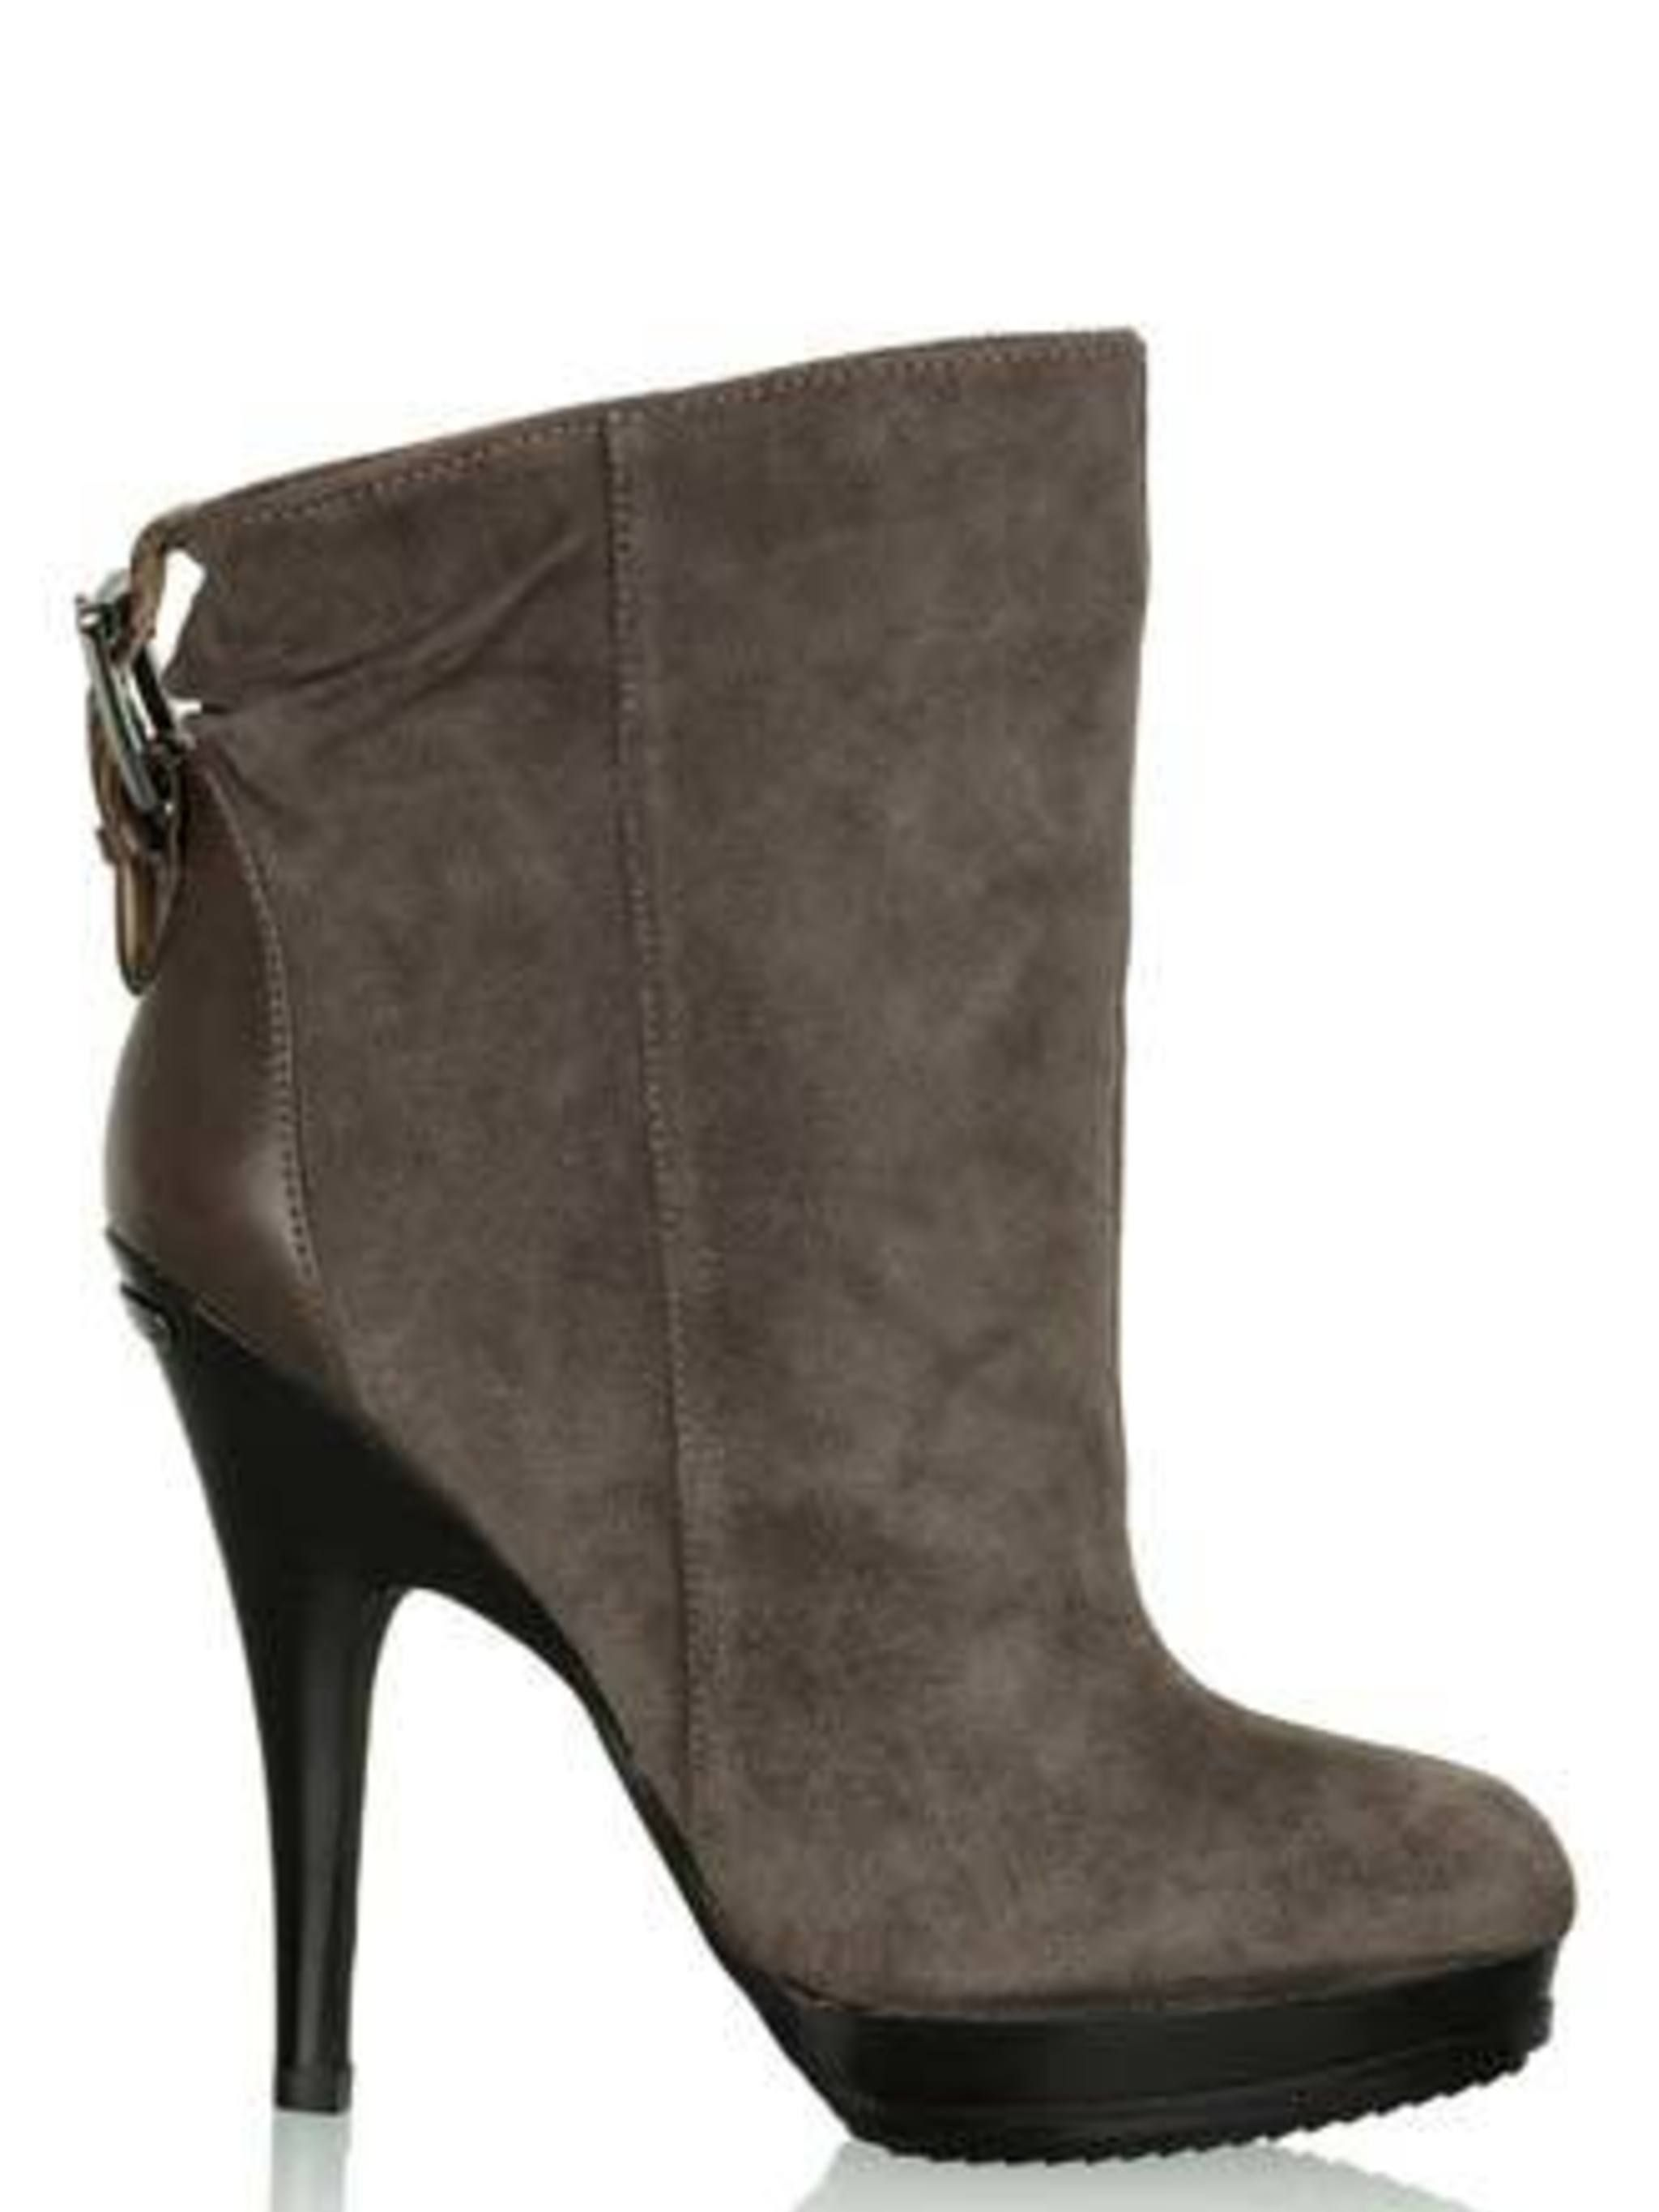 "<p>There was a collective 'ooh' when we spotted these boots. Pair with jeans and a chunky knit to get that 'casual, luxe' look just right.</p><p>Suede Boots, £190 by Michael by Michael Kors at <a href=""http://www.my-wardrobe.com/michael-by-michael-kors/gr"